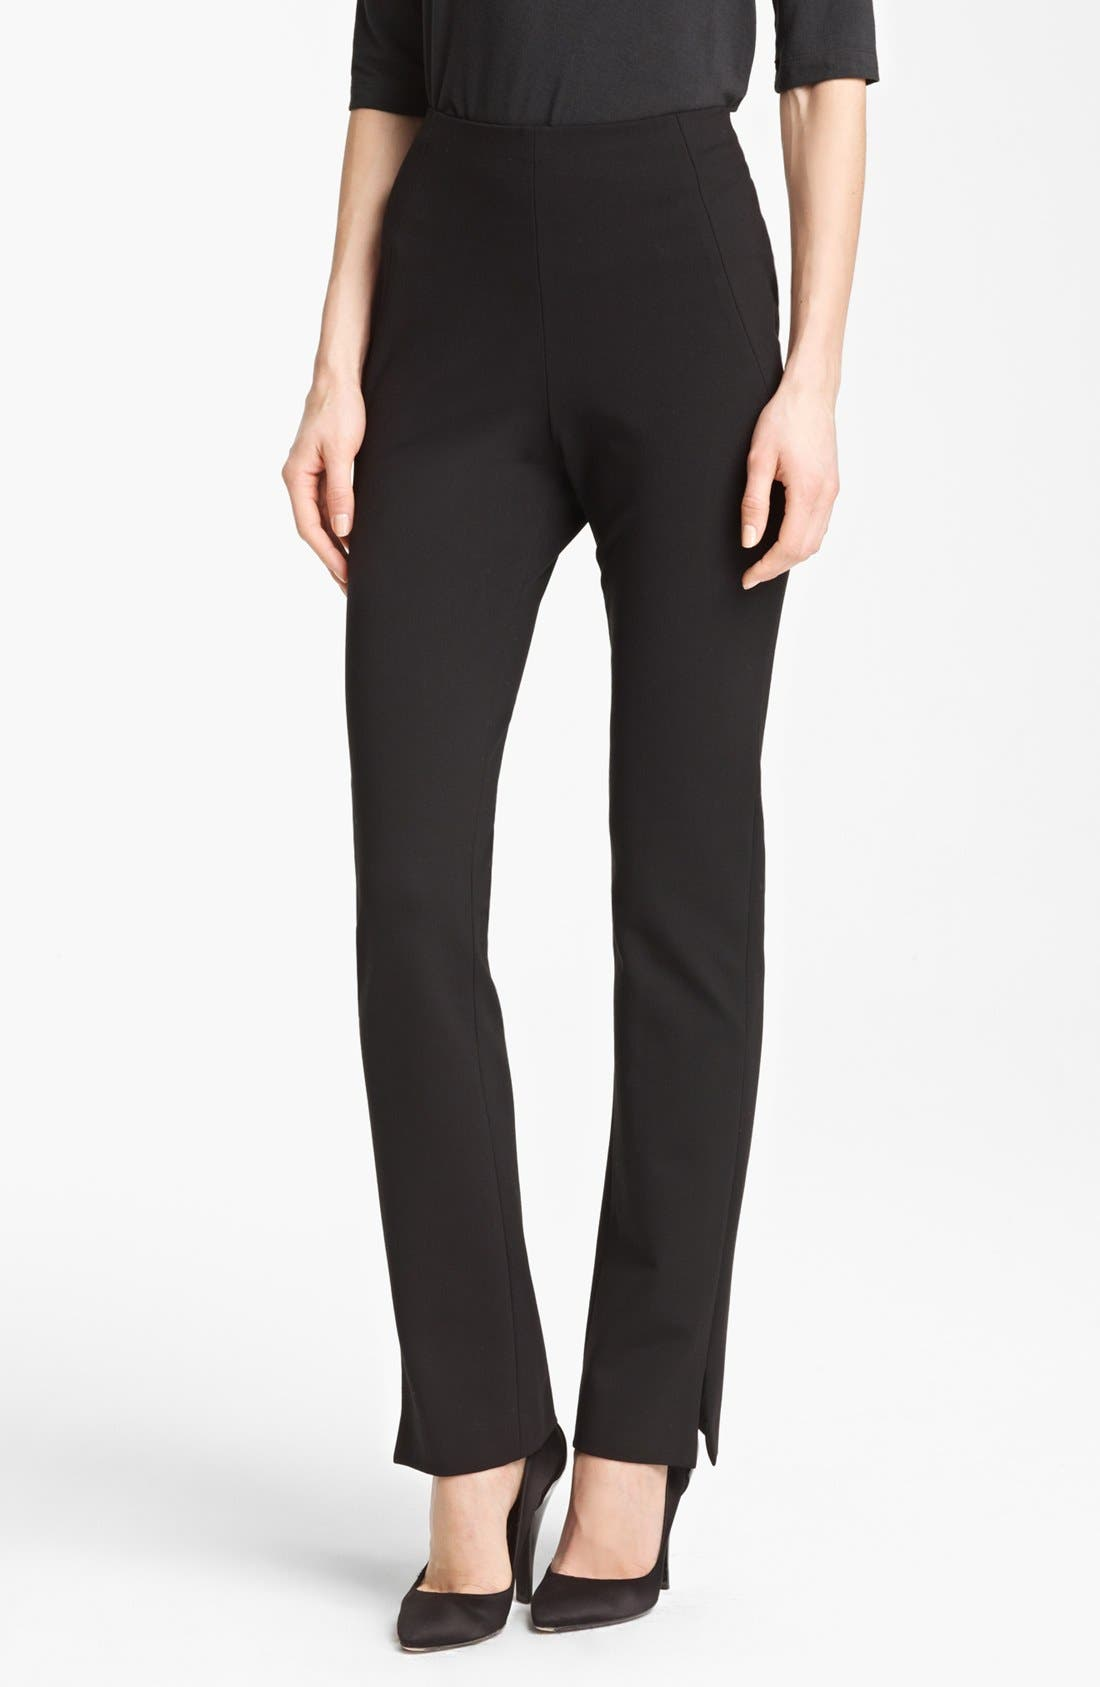 Alternate Image 1 Selected - Donna Karan New York Slim Jersey Pants